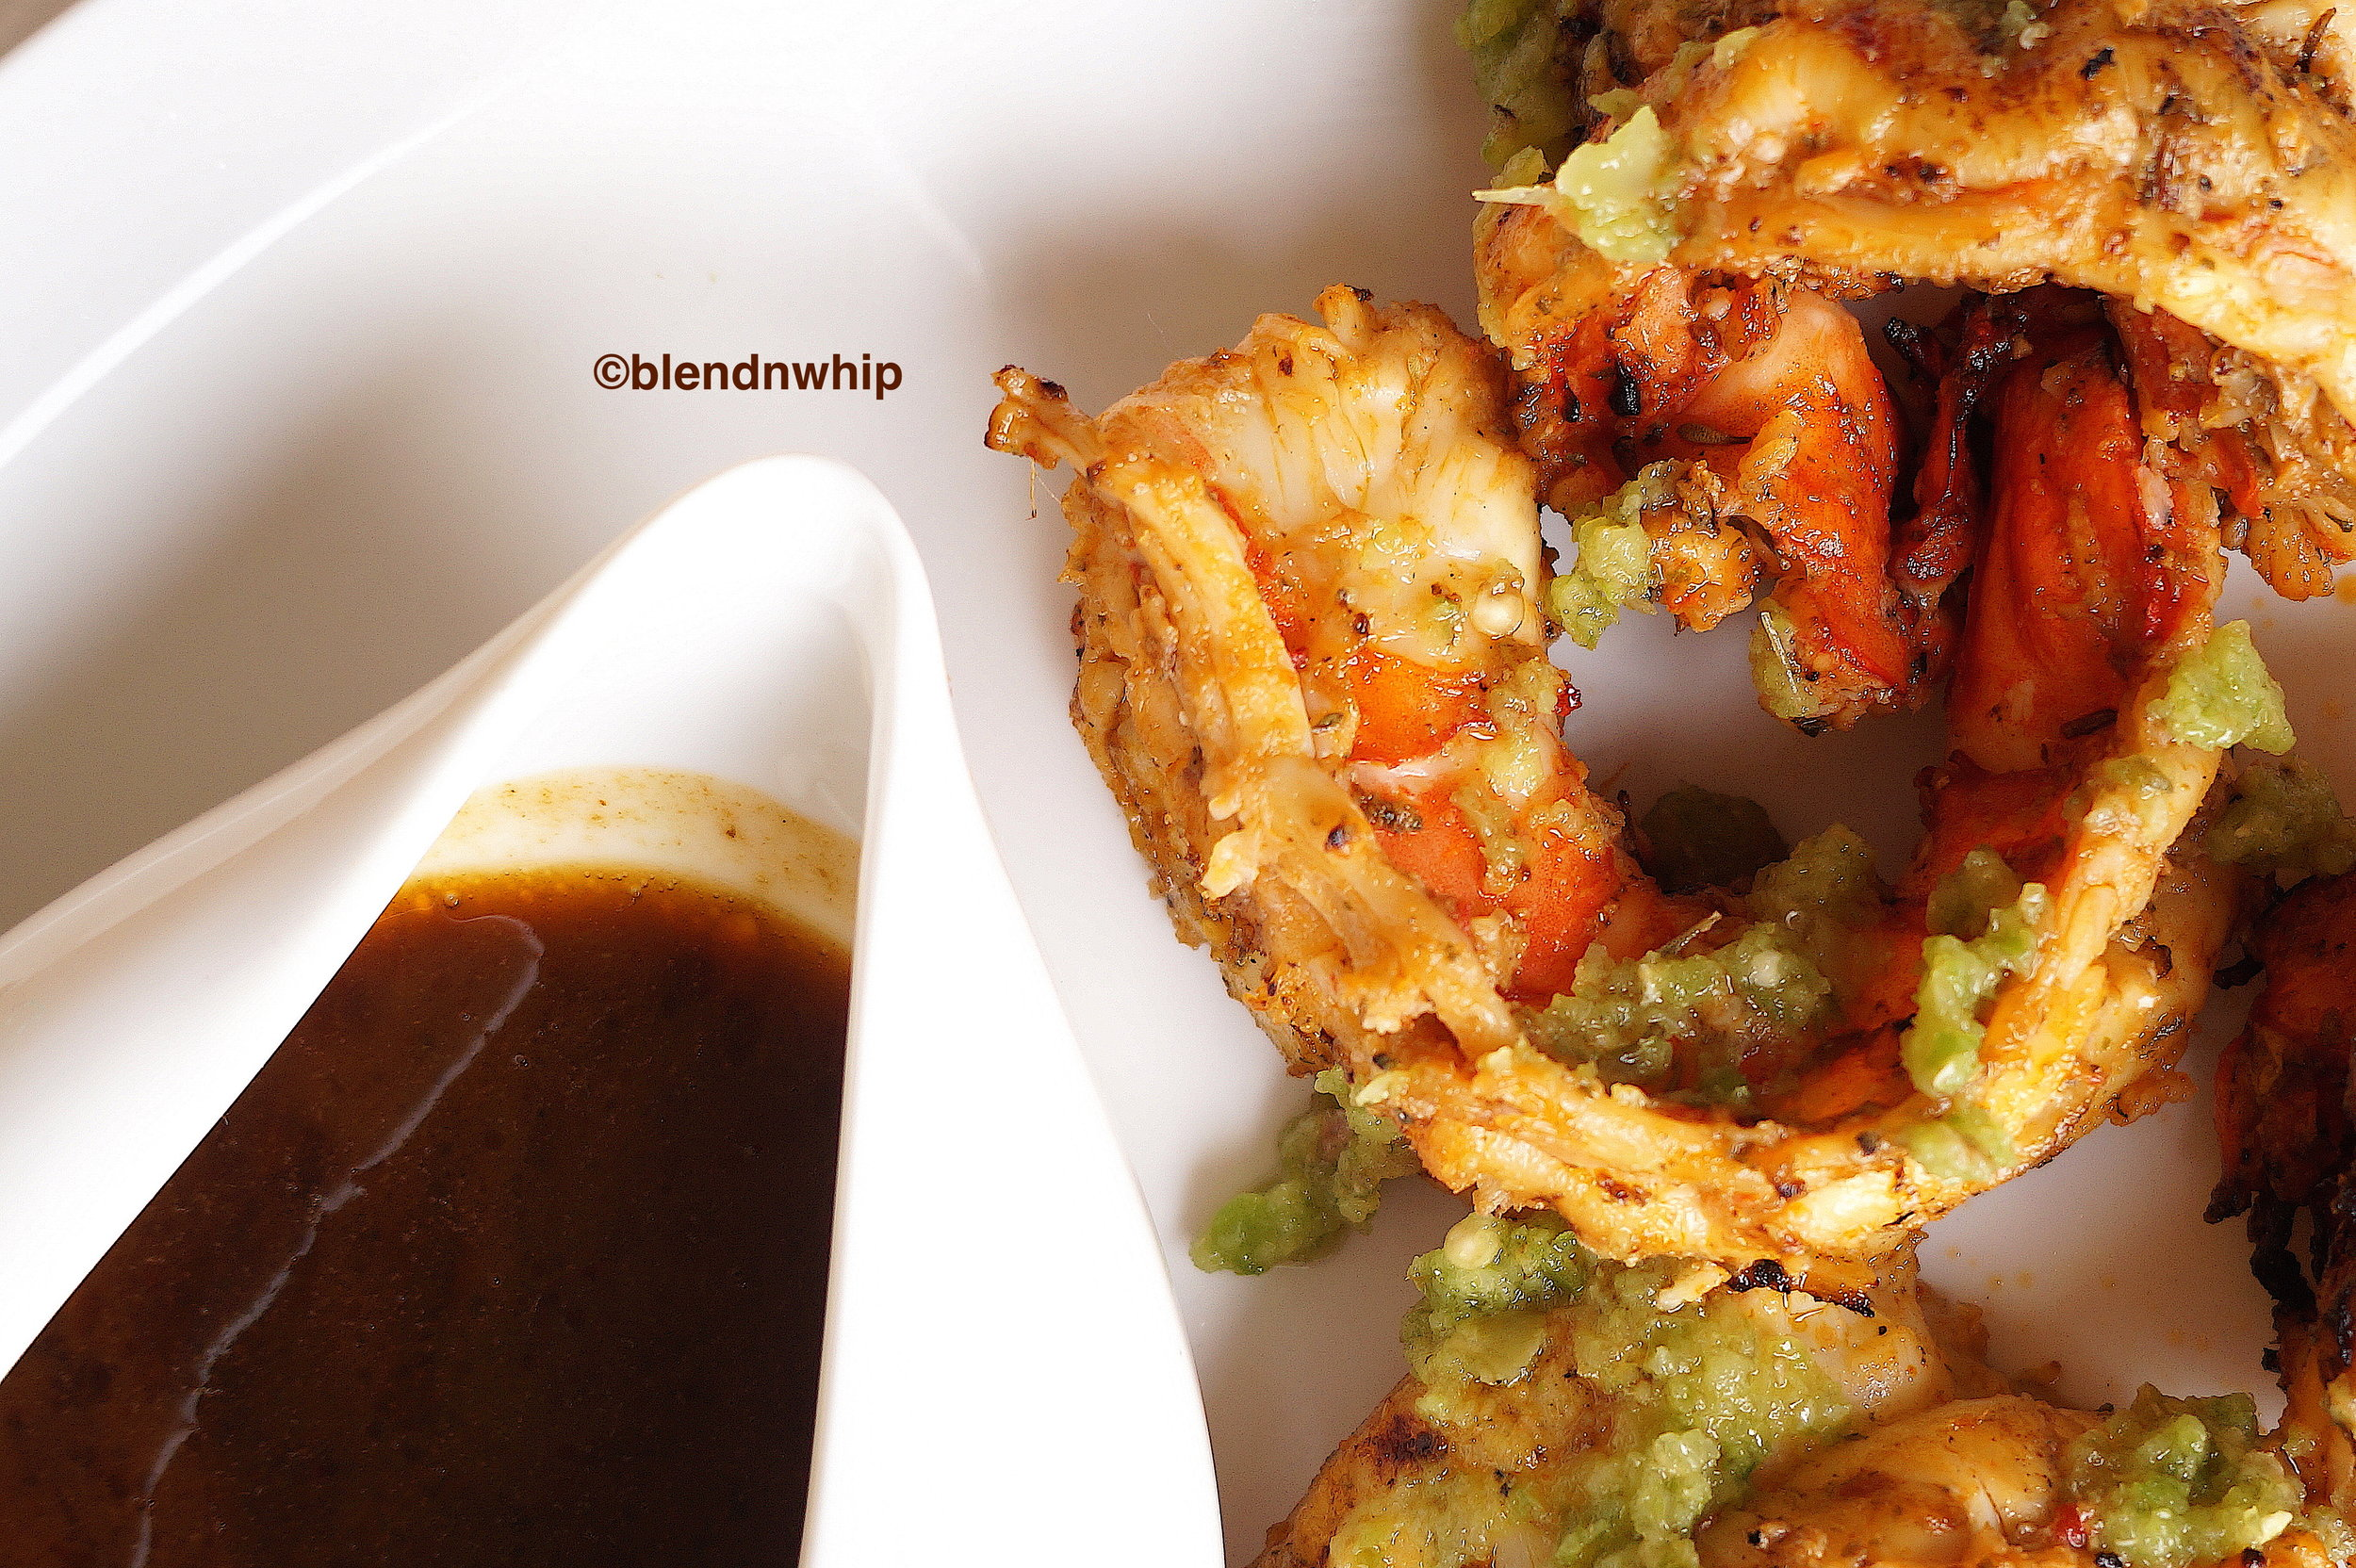 grilled prawns, green chili sauce & prawn head sauce